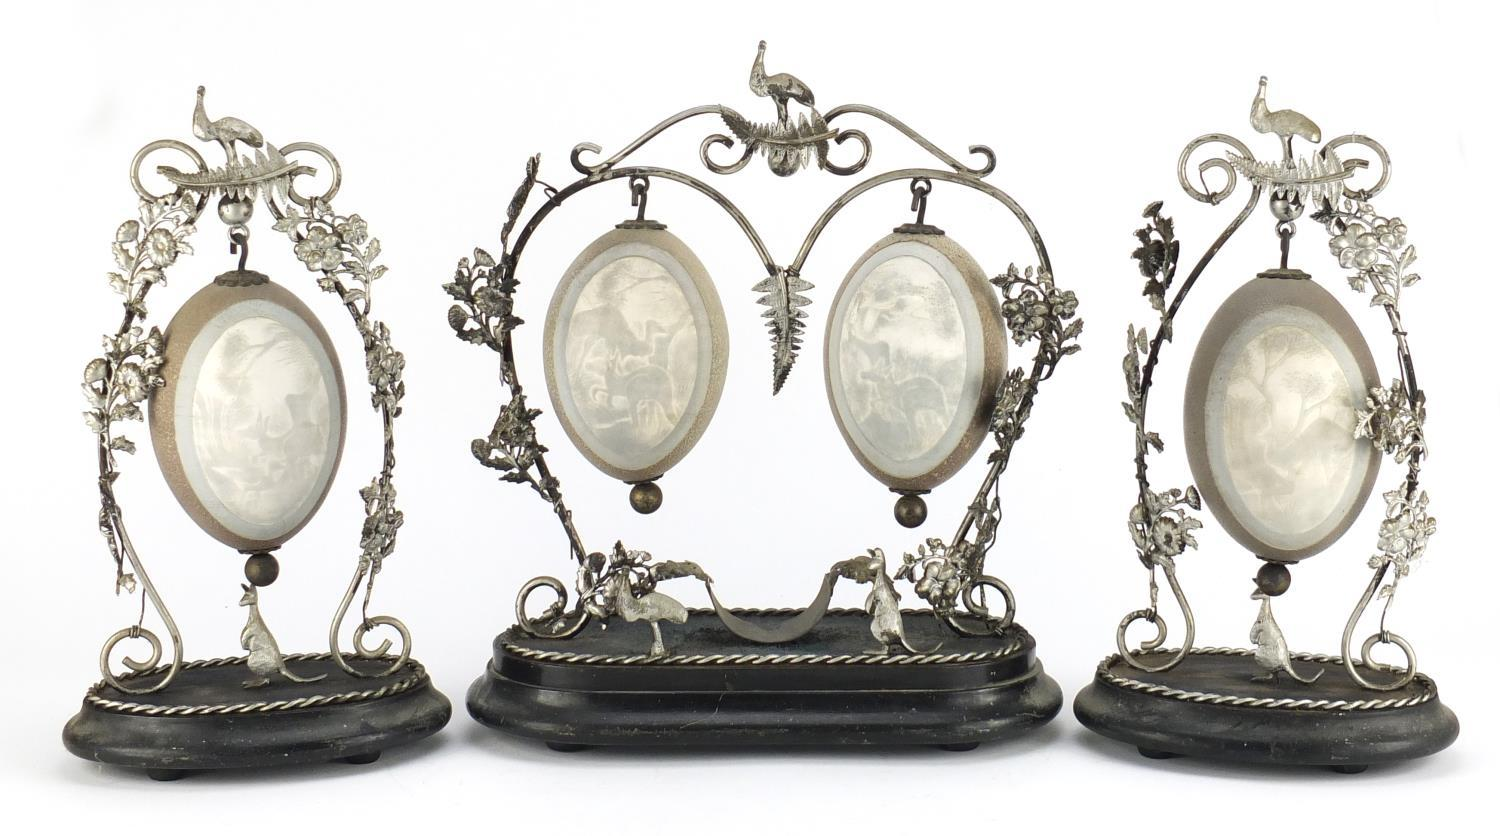 Lot 23 - Australian emu egg garniture with silver coloured metal mounts, the eggs carved with kangaroo's